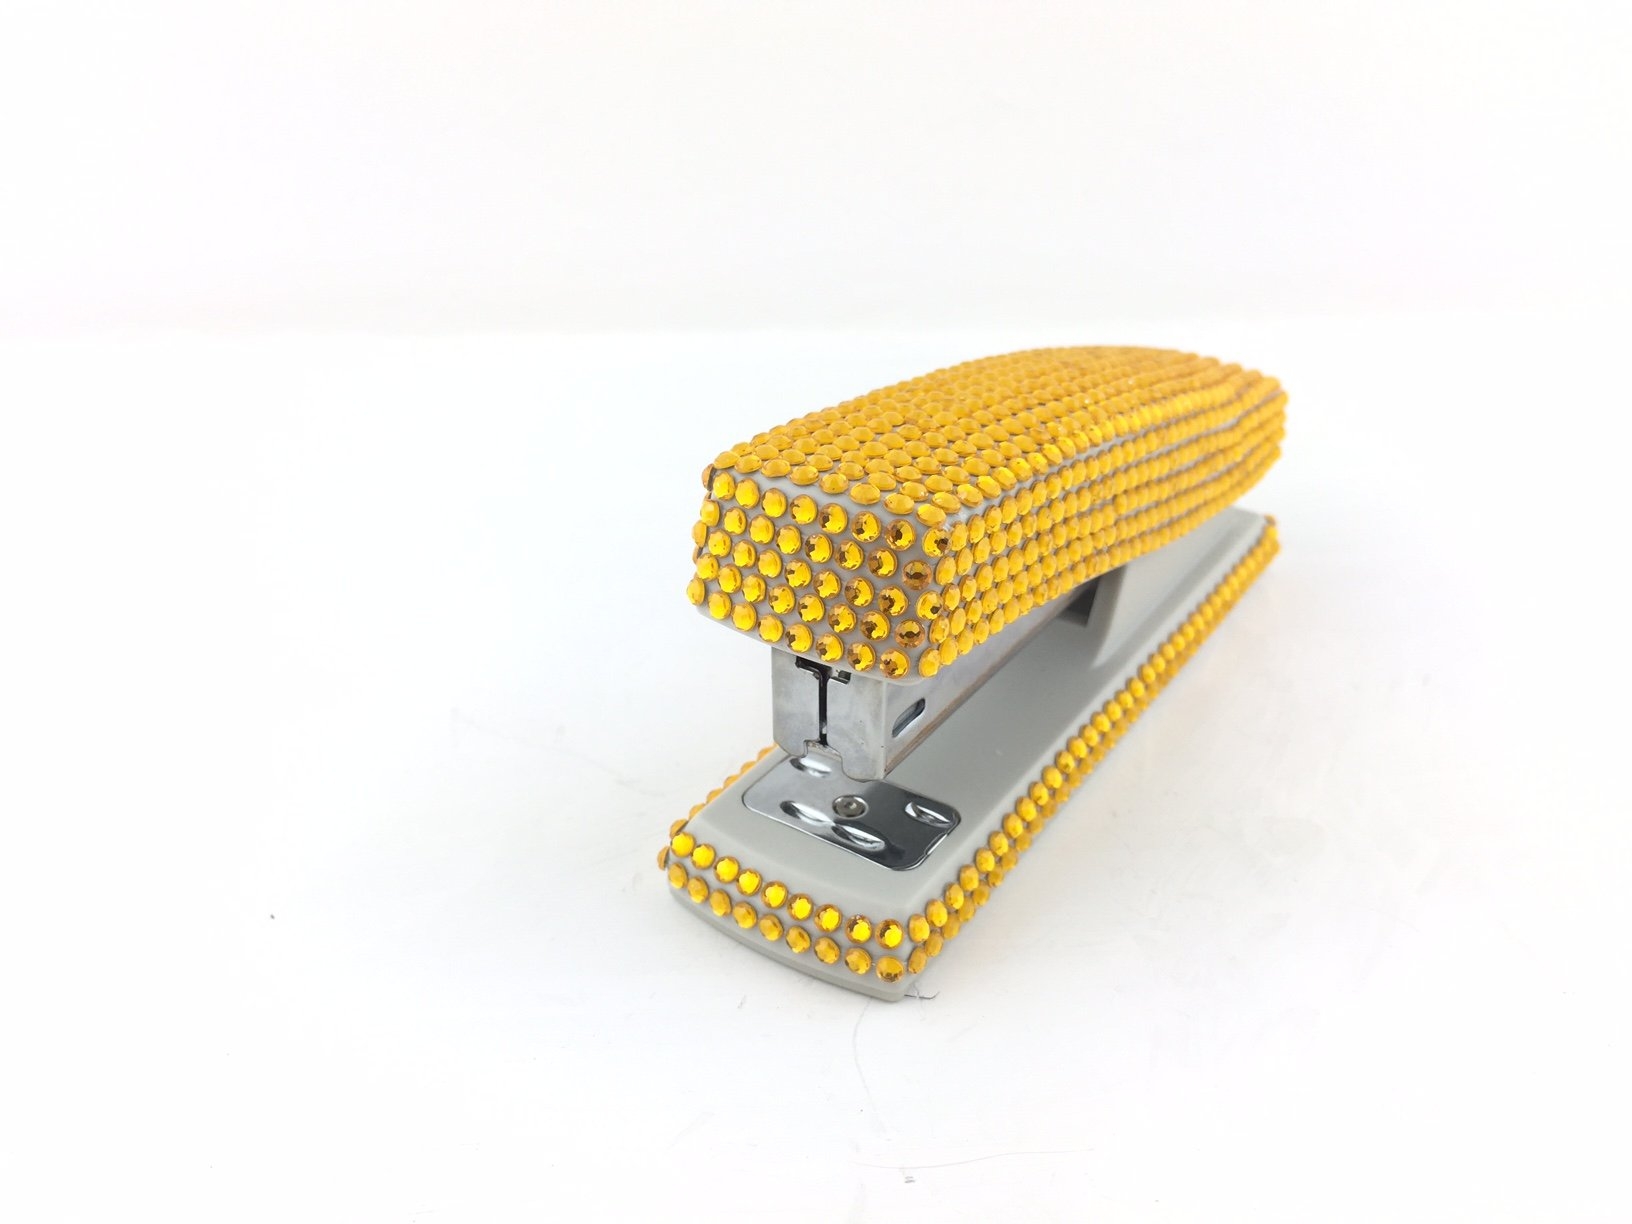 blingustyle Sparkly Diamante Crystal Stapler For Office/Home Gold by blingustyle (Image #3)